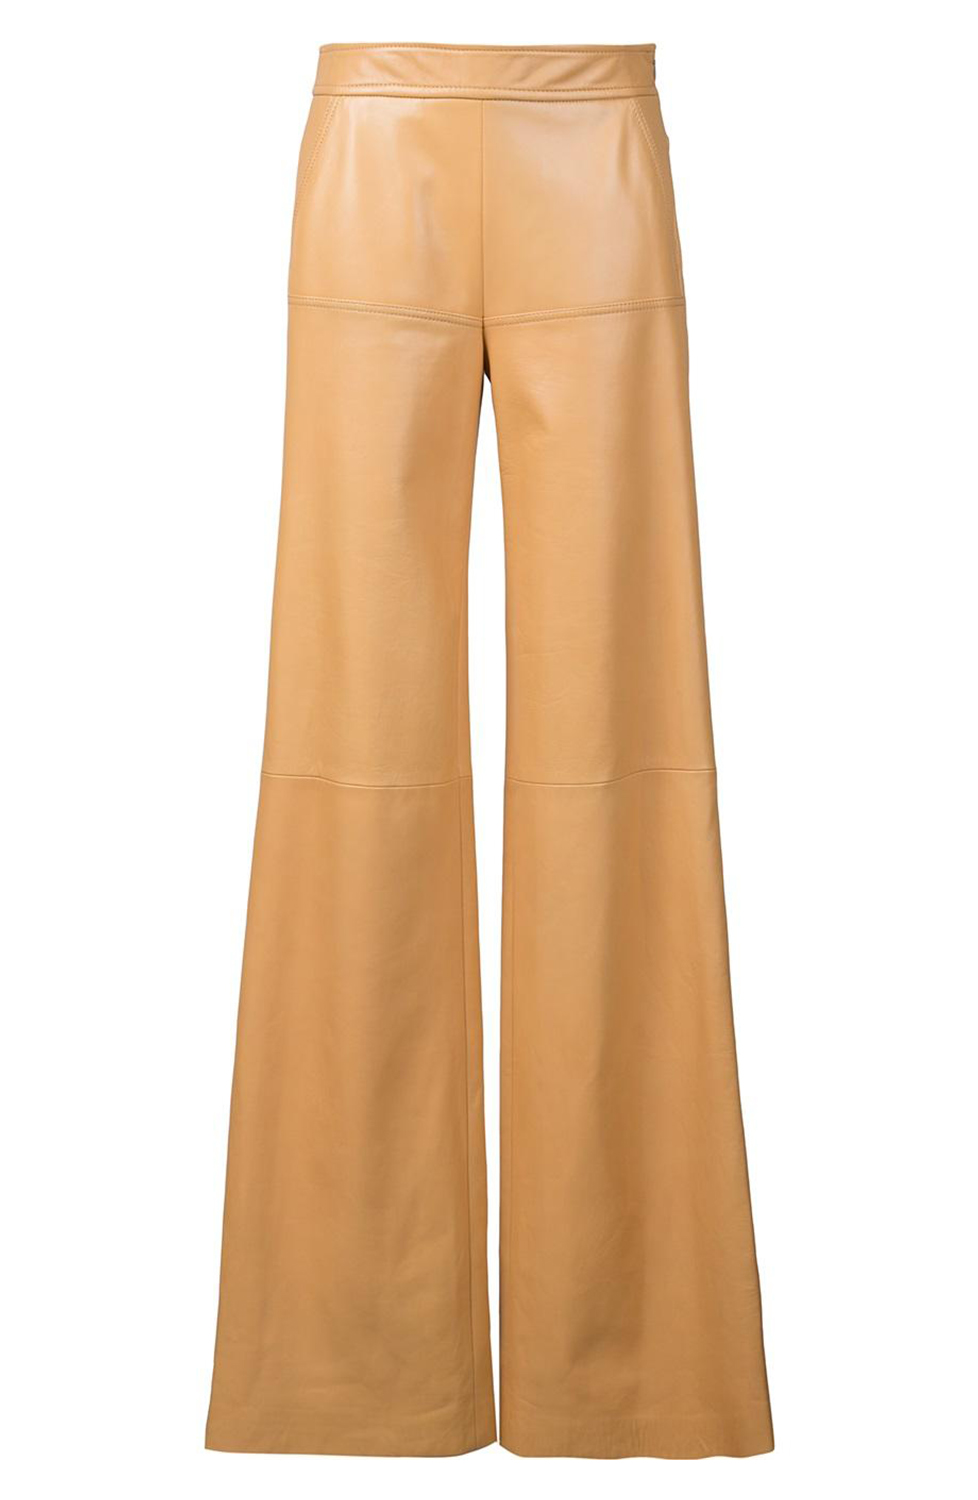 Butterscotch leather flairs are edgy, yet professional - and an excellent departure from your typical work pants.  - Derek Lam Leather Trouser                                    dereklam.com                                                          $1,180